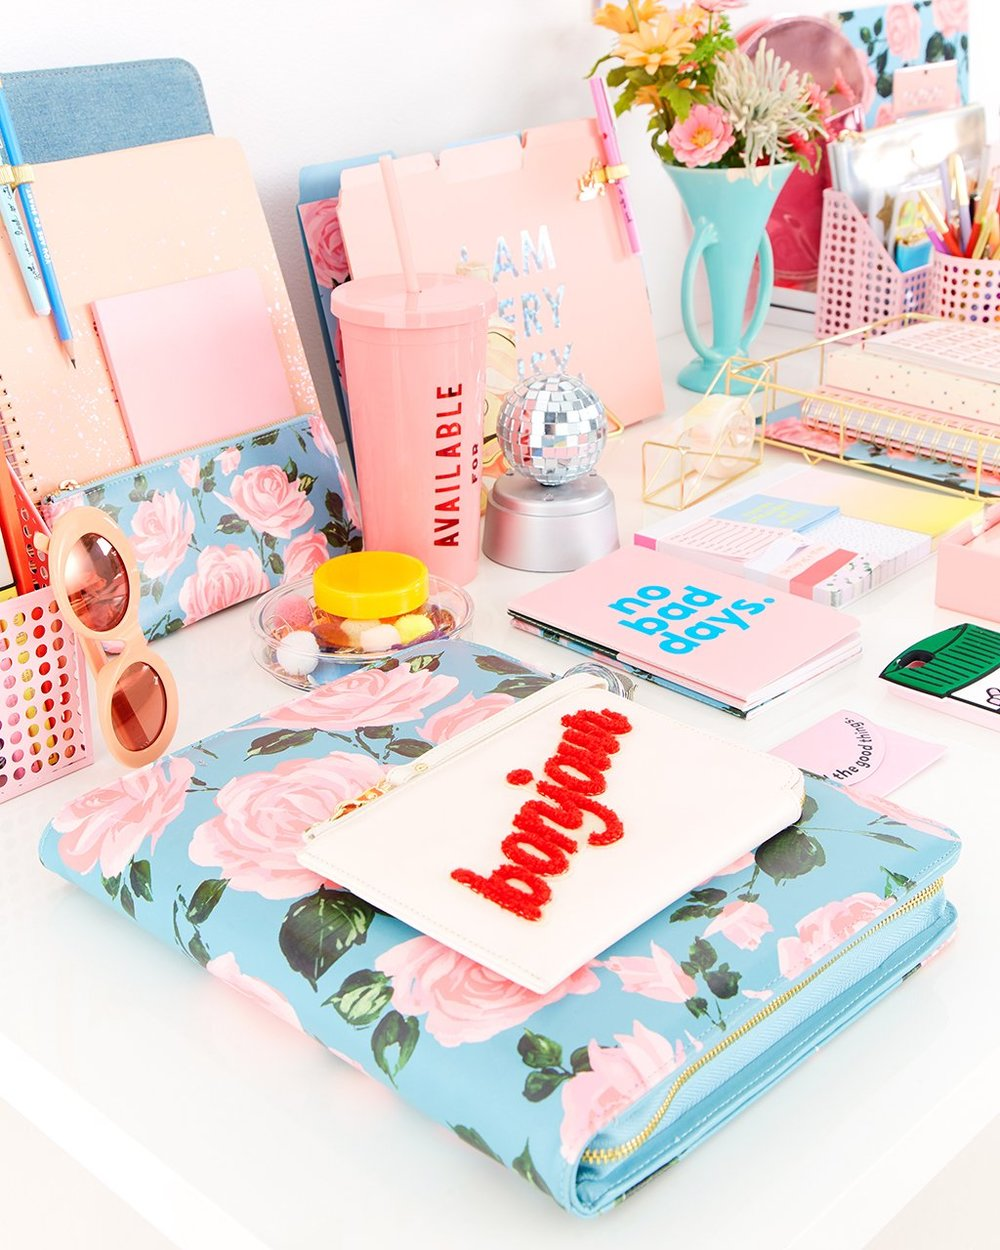 ban.d0 - Jen Gotch, founder of this awesome gifts, accessories, and office supplies company, has created not just a successful company, but also built an impressive social following.